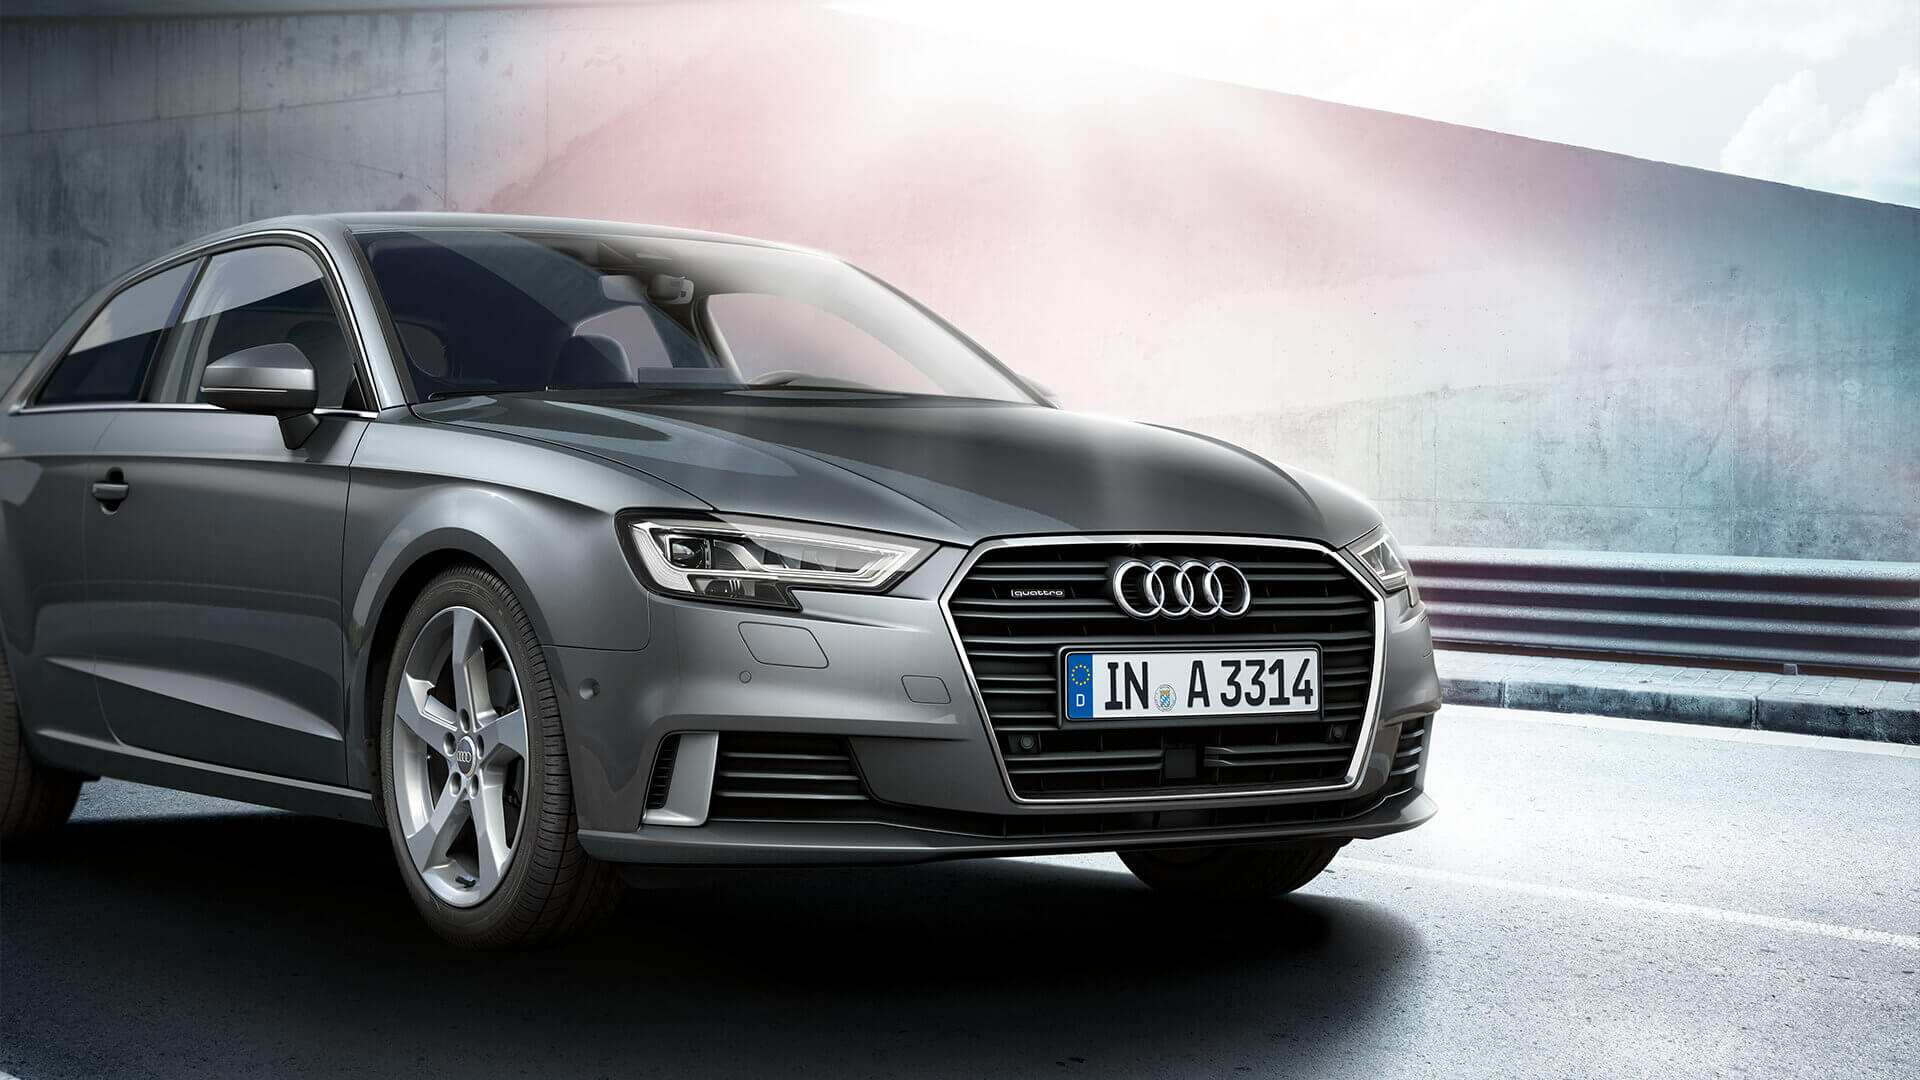 50 Great Audi A3 2019 Uk New Review by Audi A3 2019 Uk